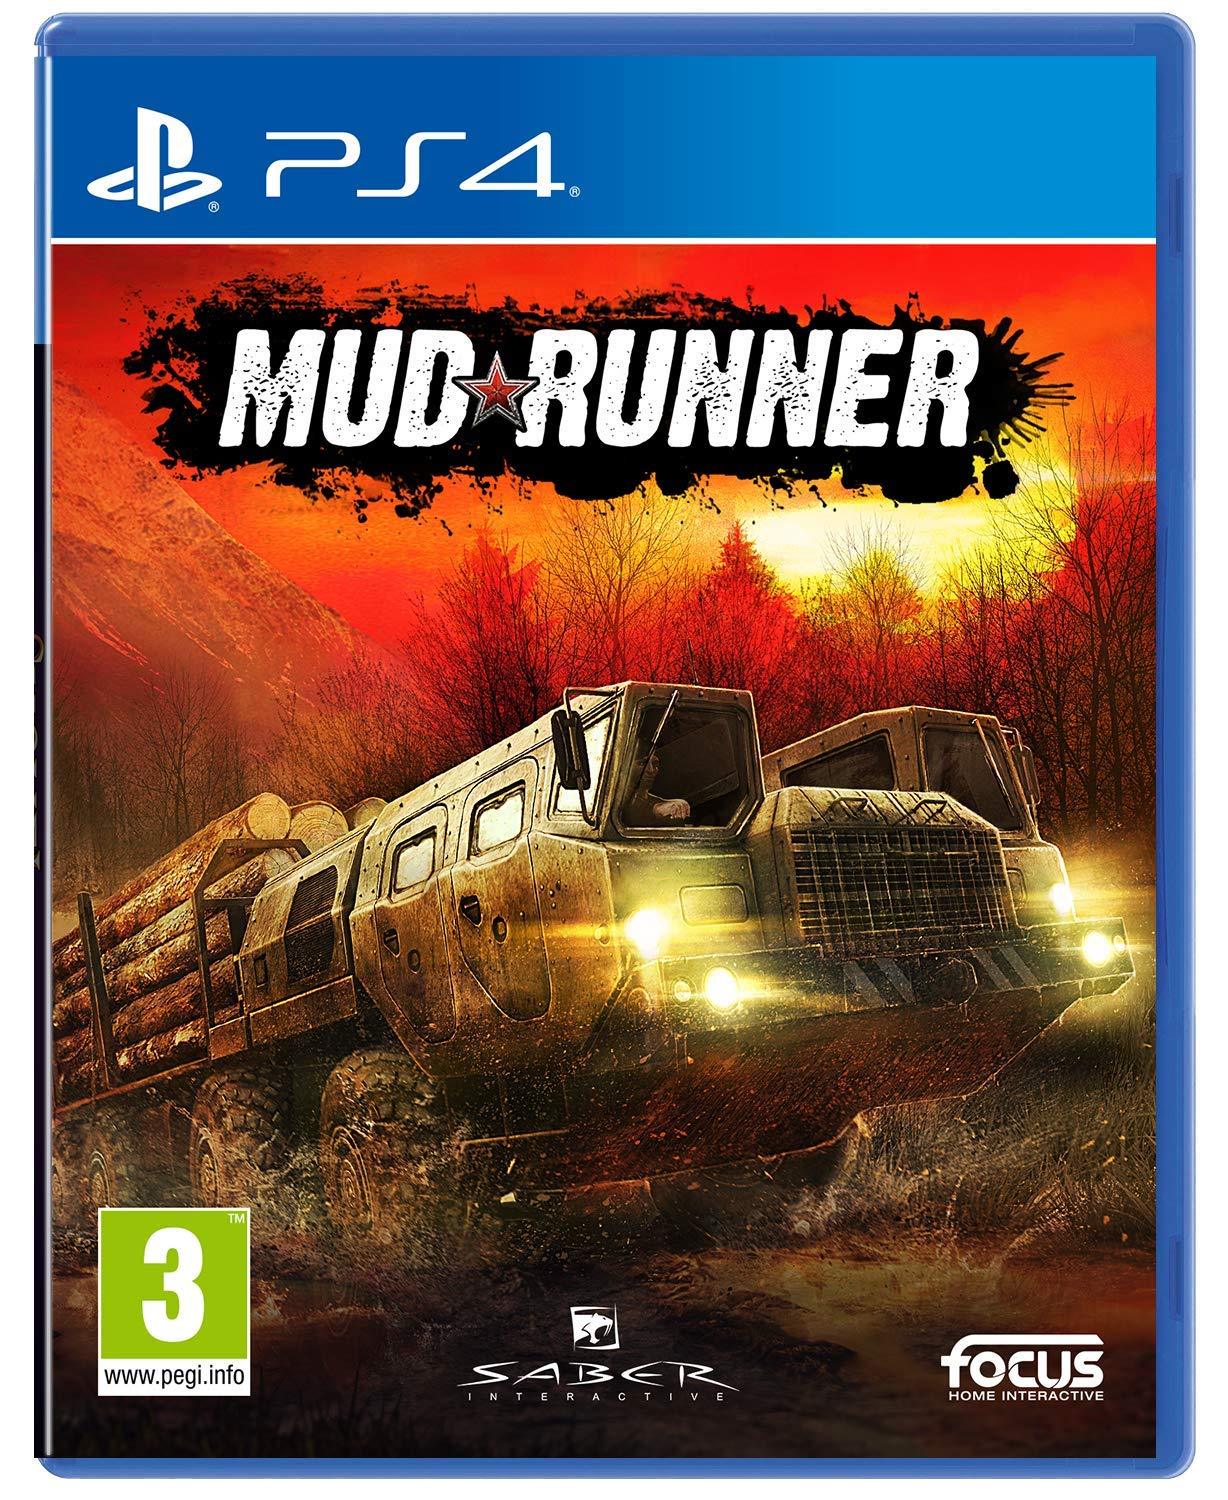 Mud runner [PS4] : a spintires game | Focus Home Interactive